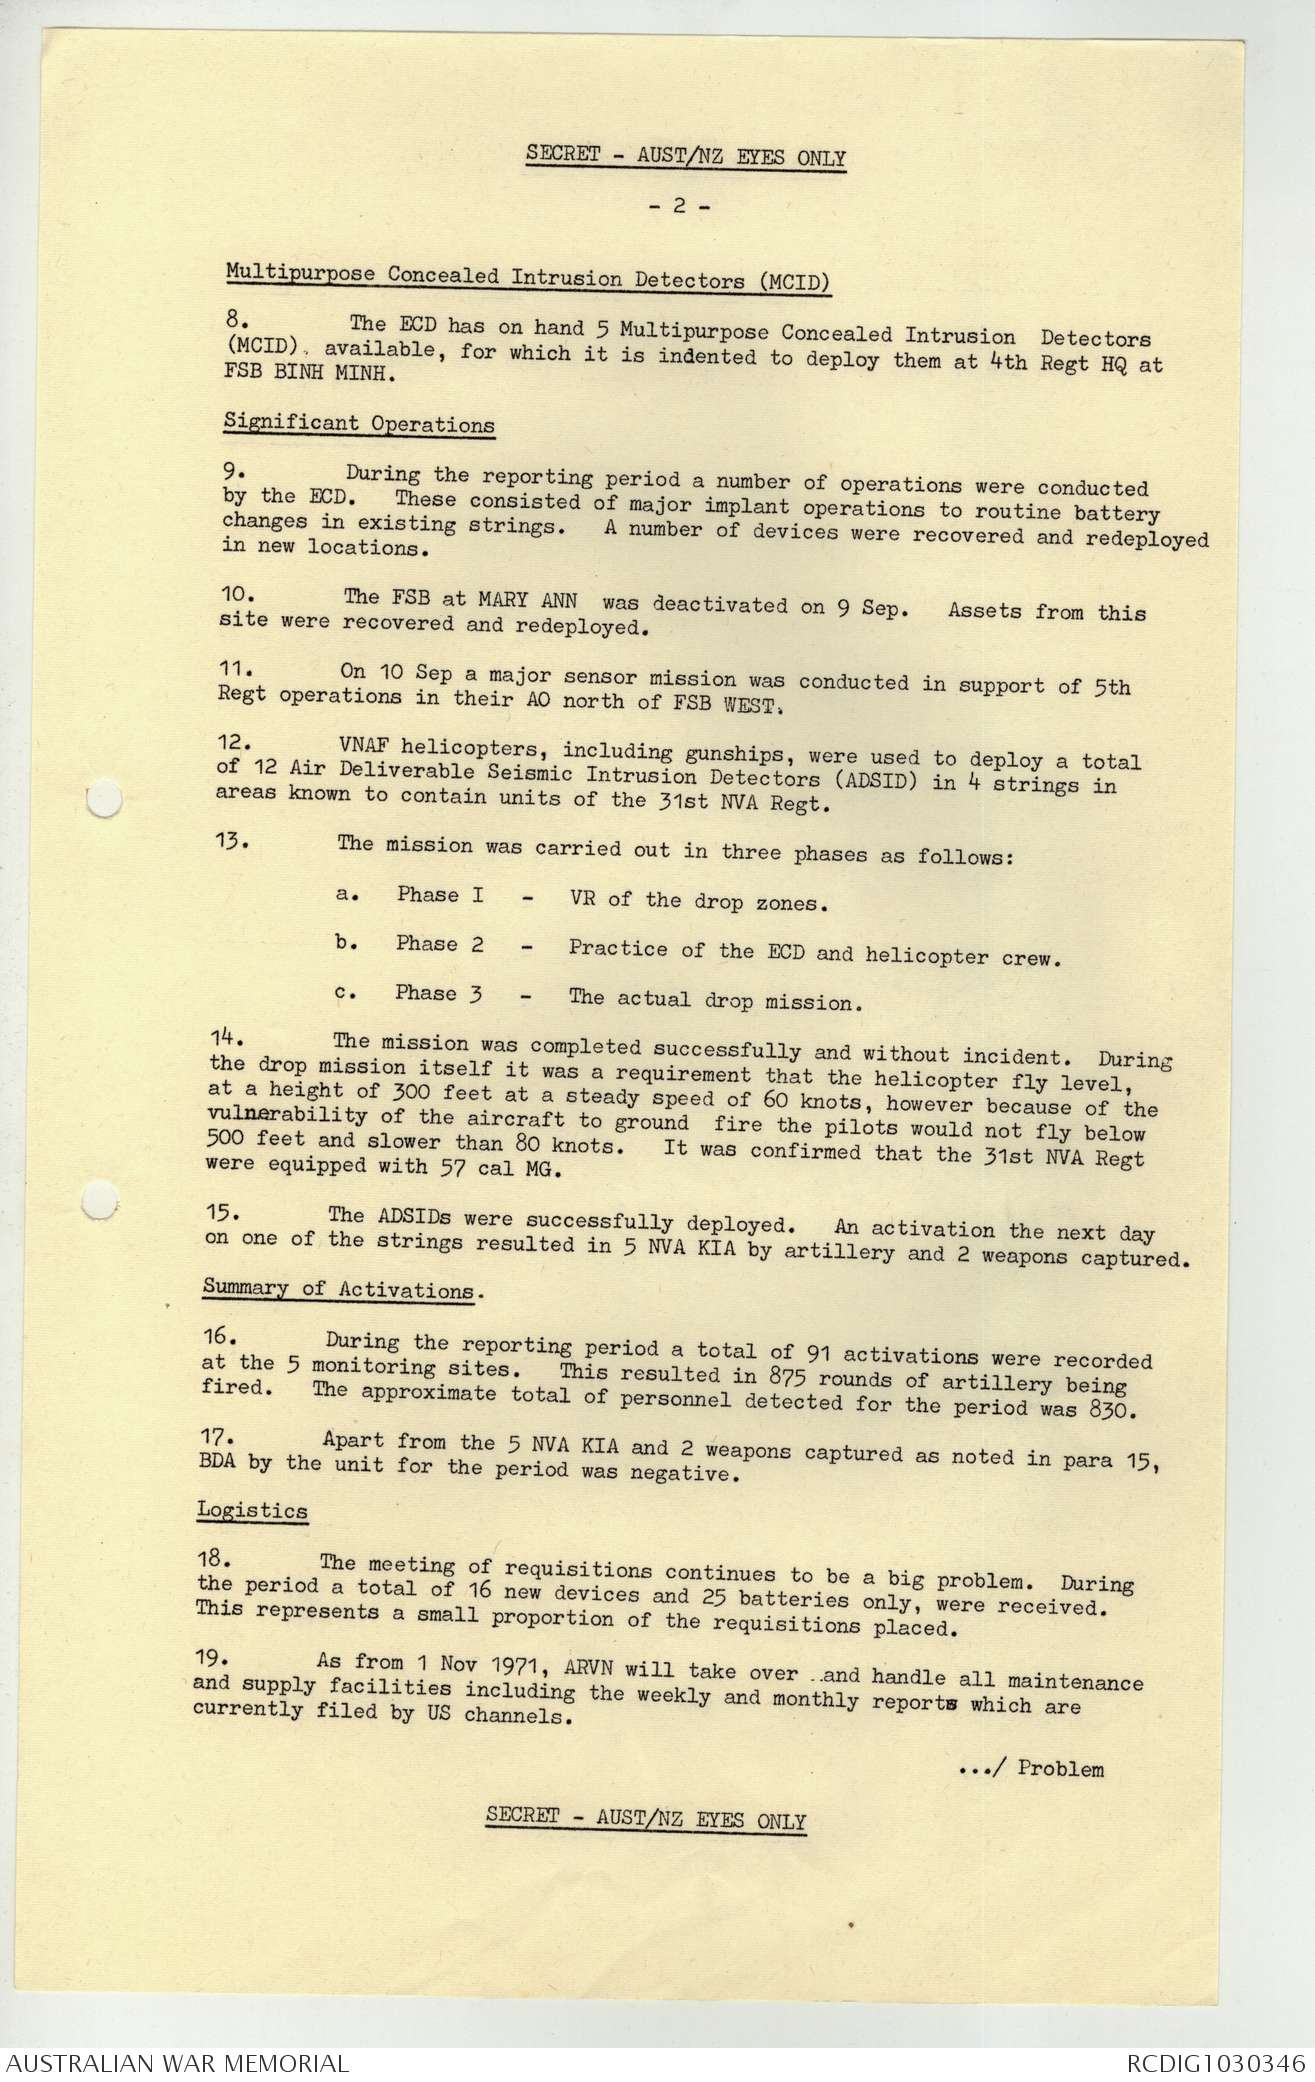 AWM103 R723/1/57/37 - September 1971, Monthly report | The